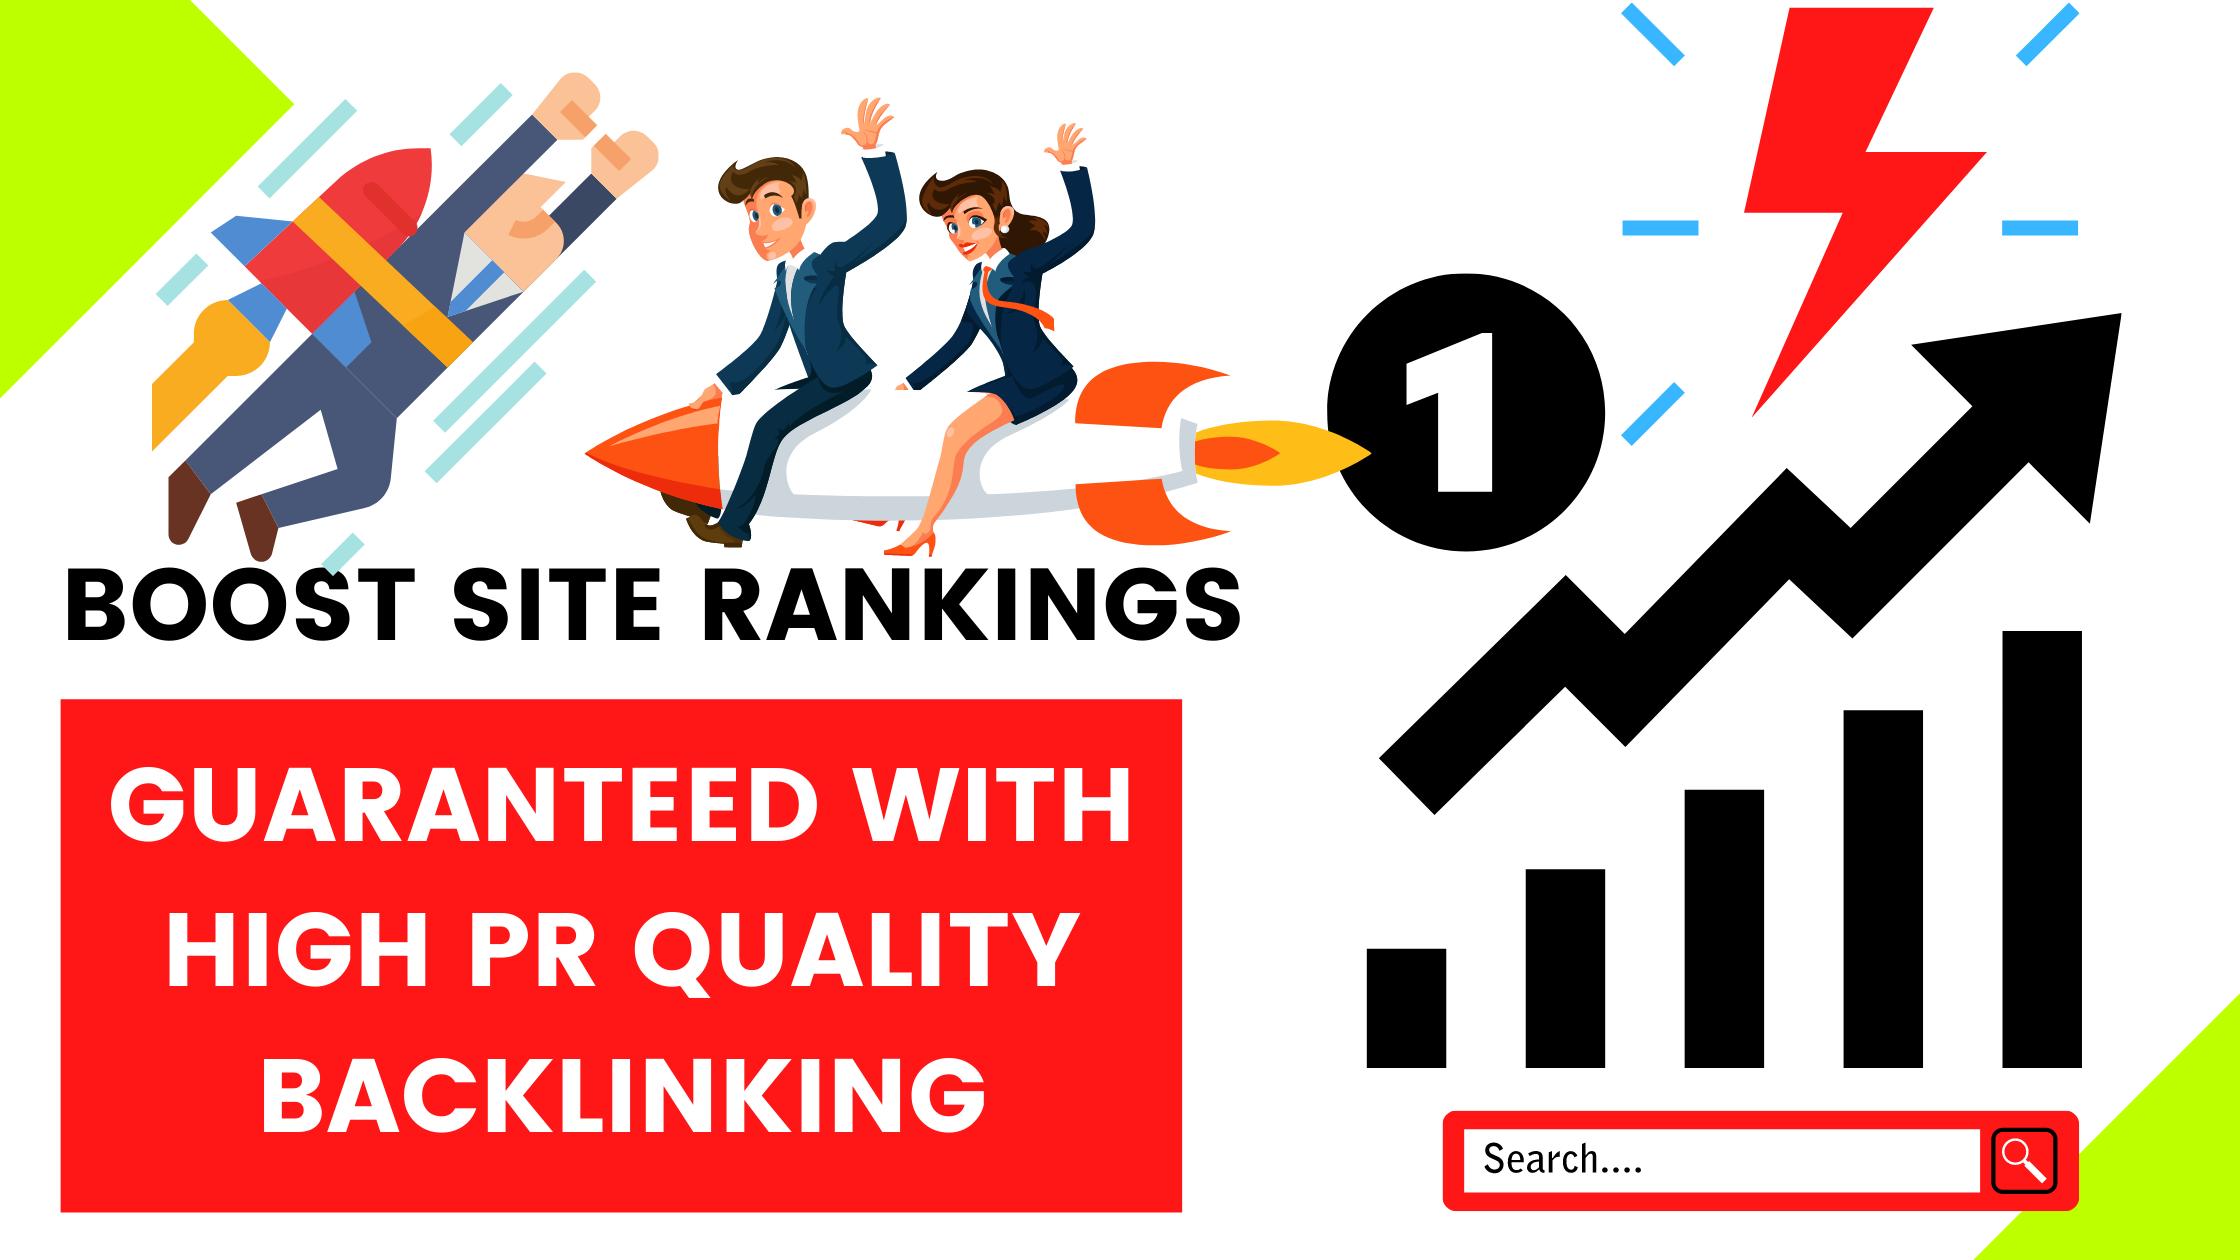 Boost Your Website Google Rankings Guaranteed with High PR Quality Backlinking